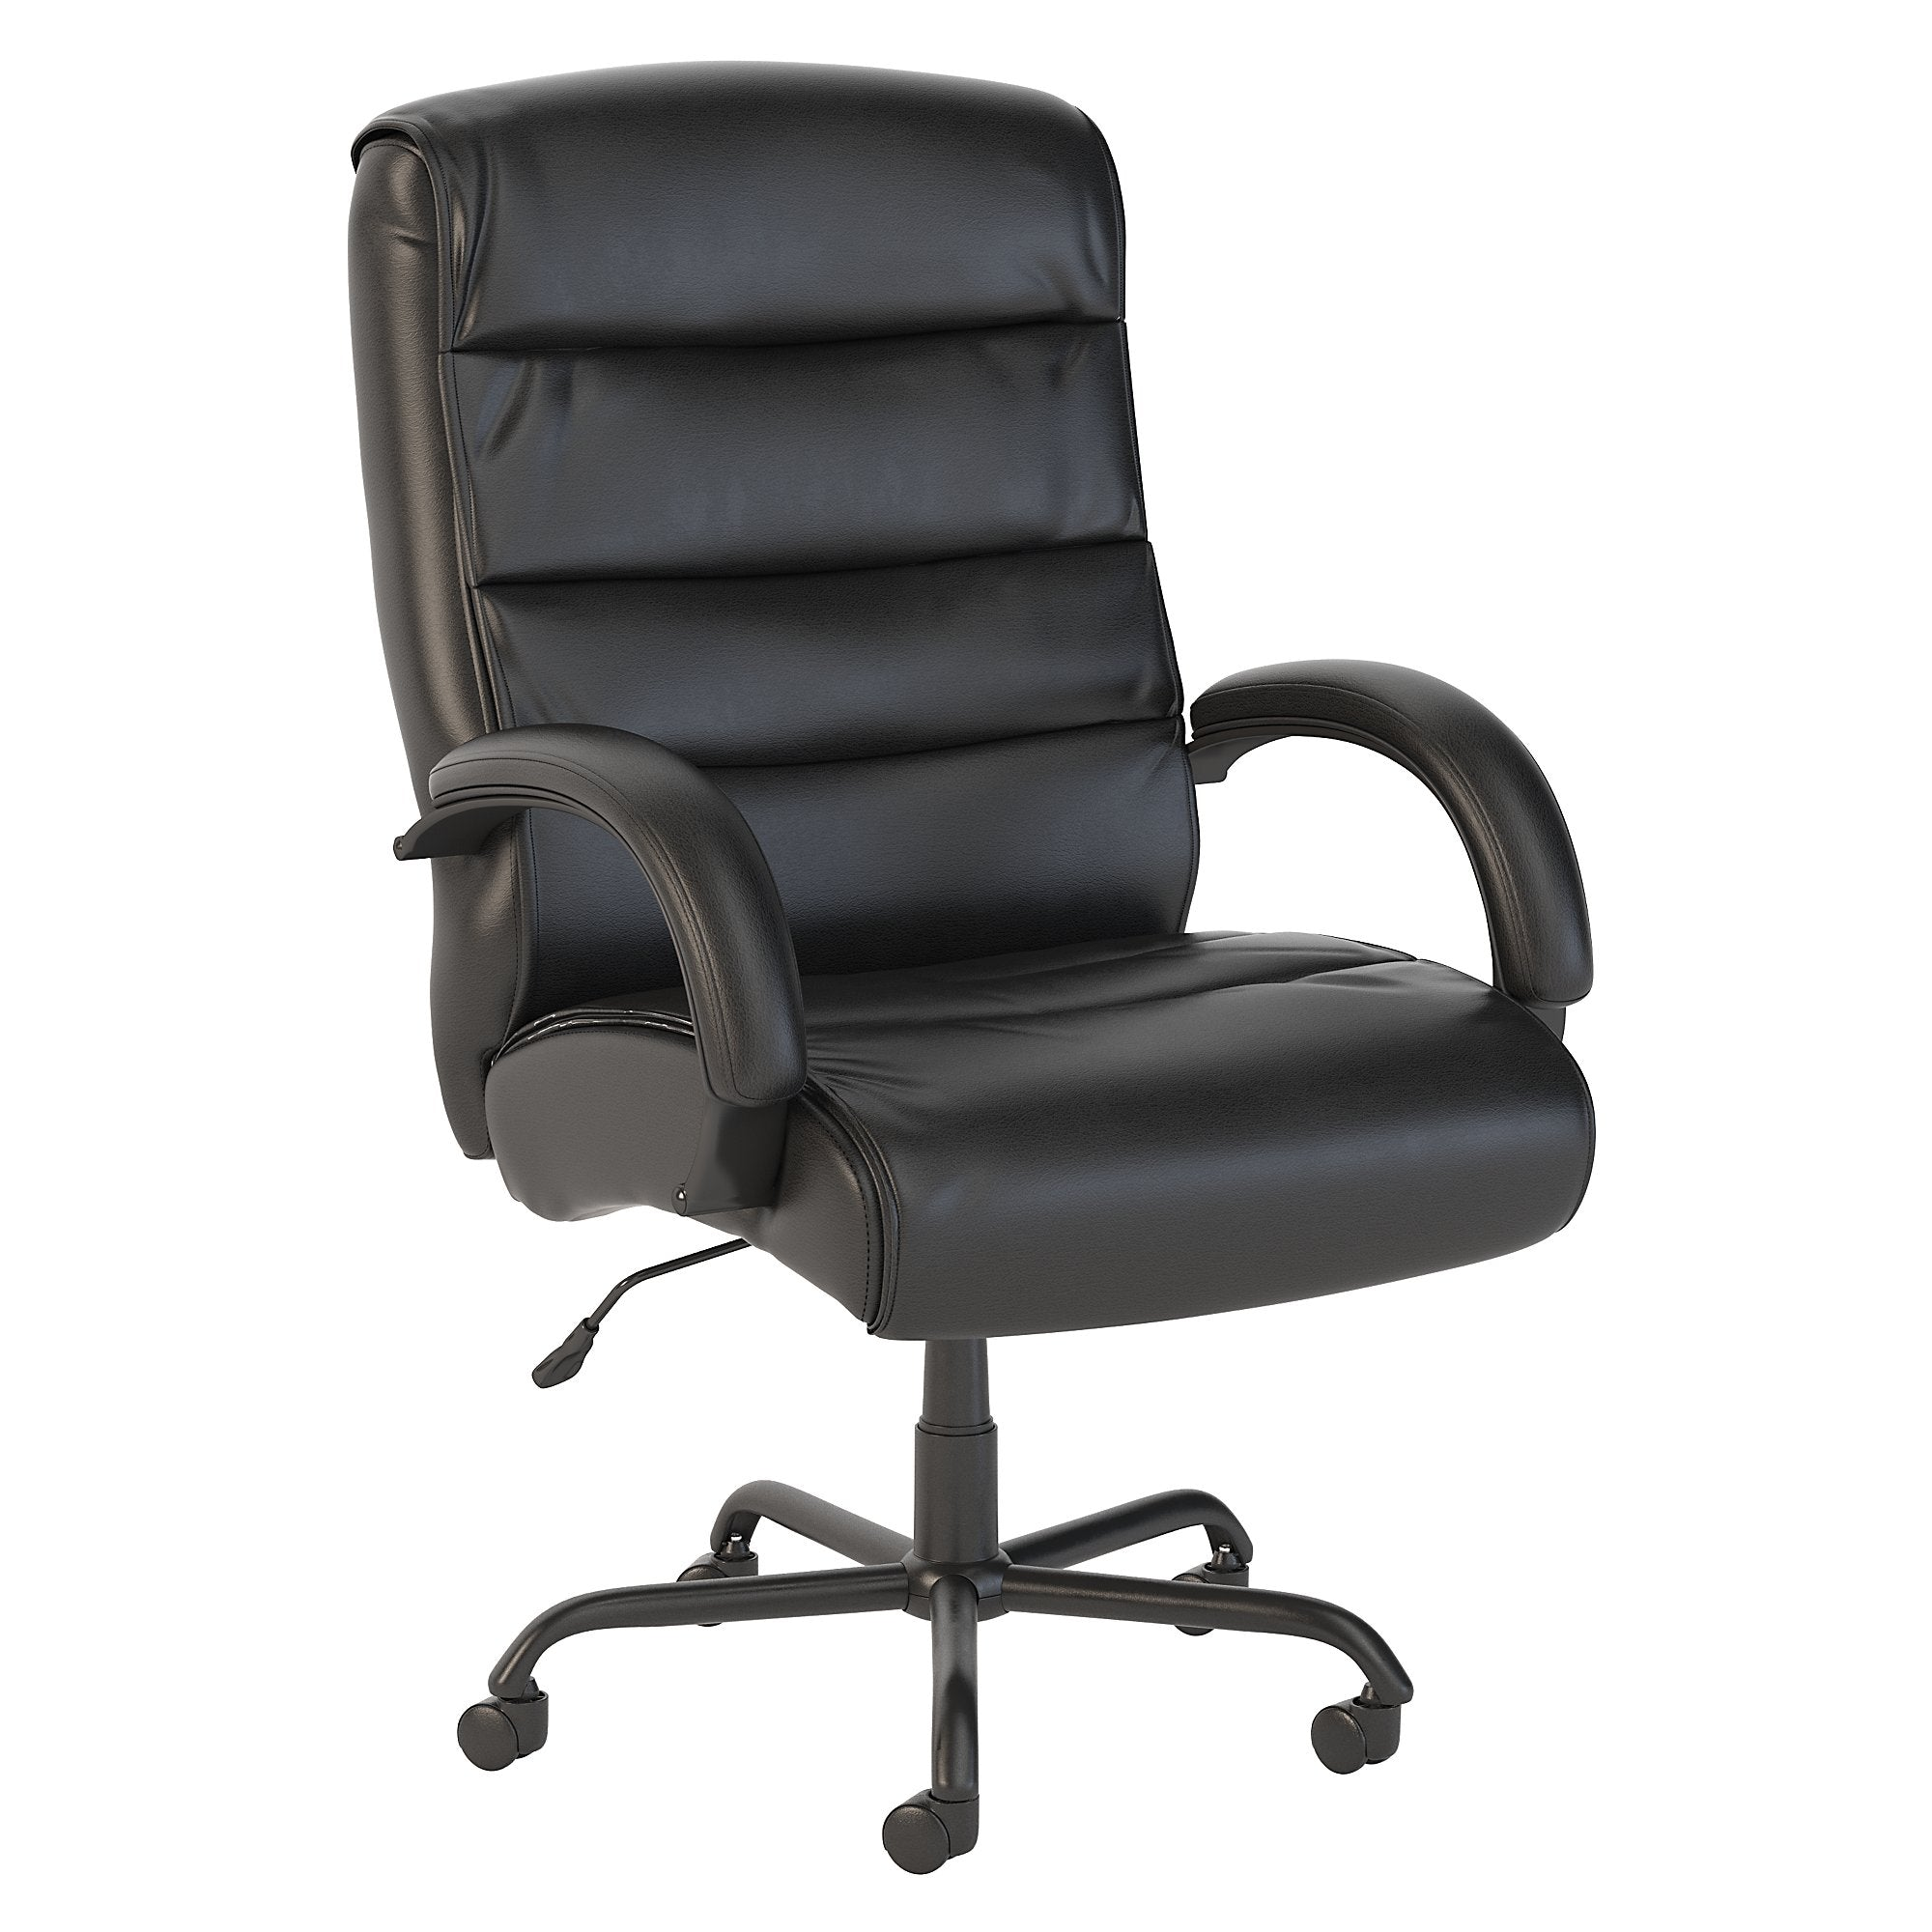 CH1503BLL-03 Bush Business Furniture Soft Sense Big and Tall High Back Black Leather Executive Office Chair